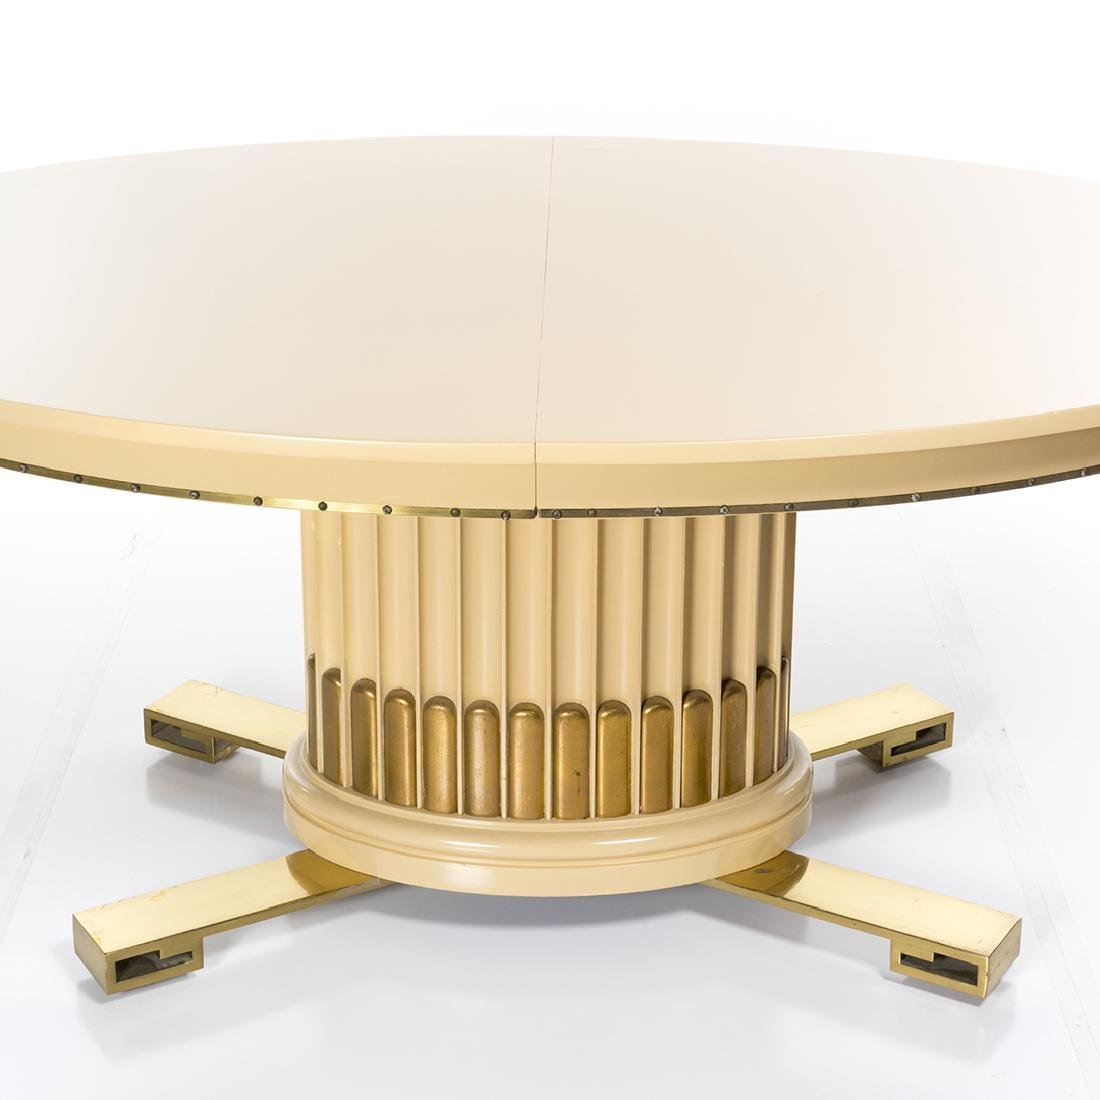 Renzo Rutili Dining Table - 4